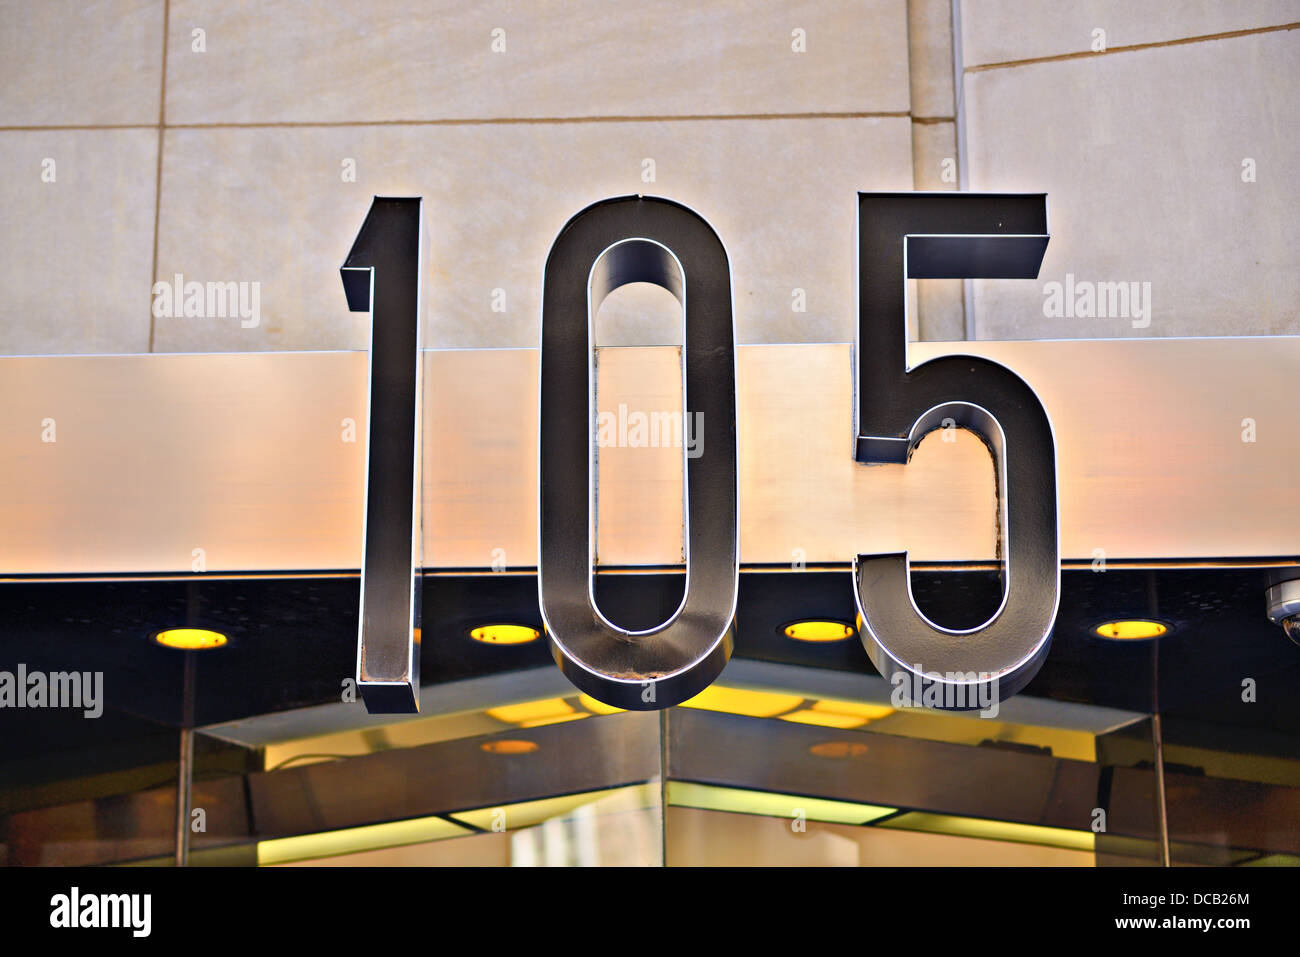 Building address number 105. - Stock Image